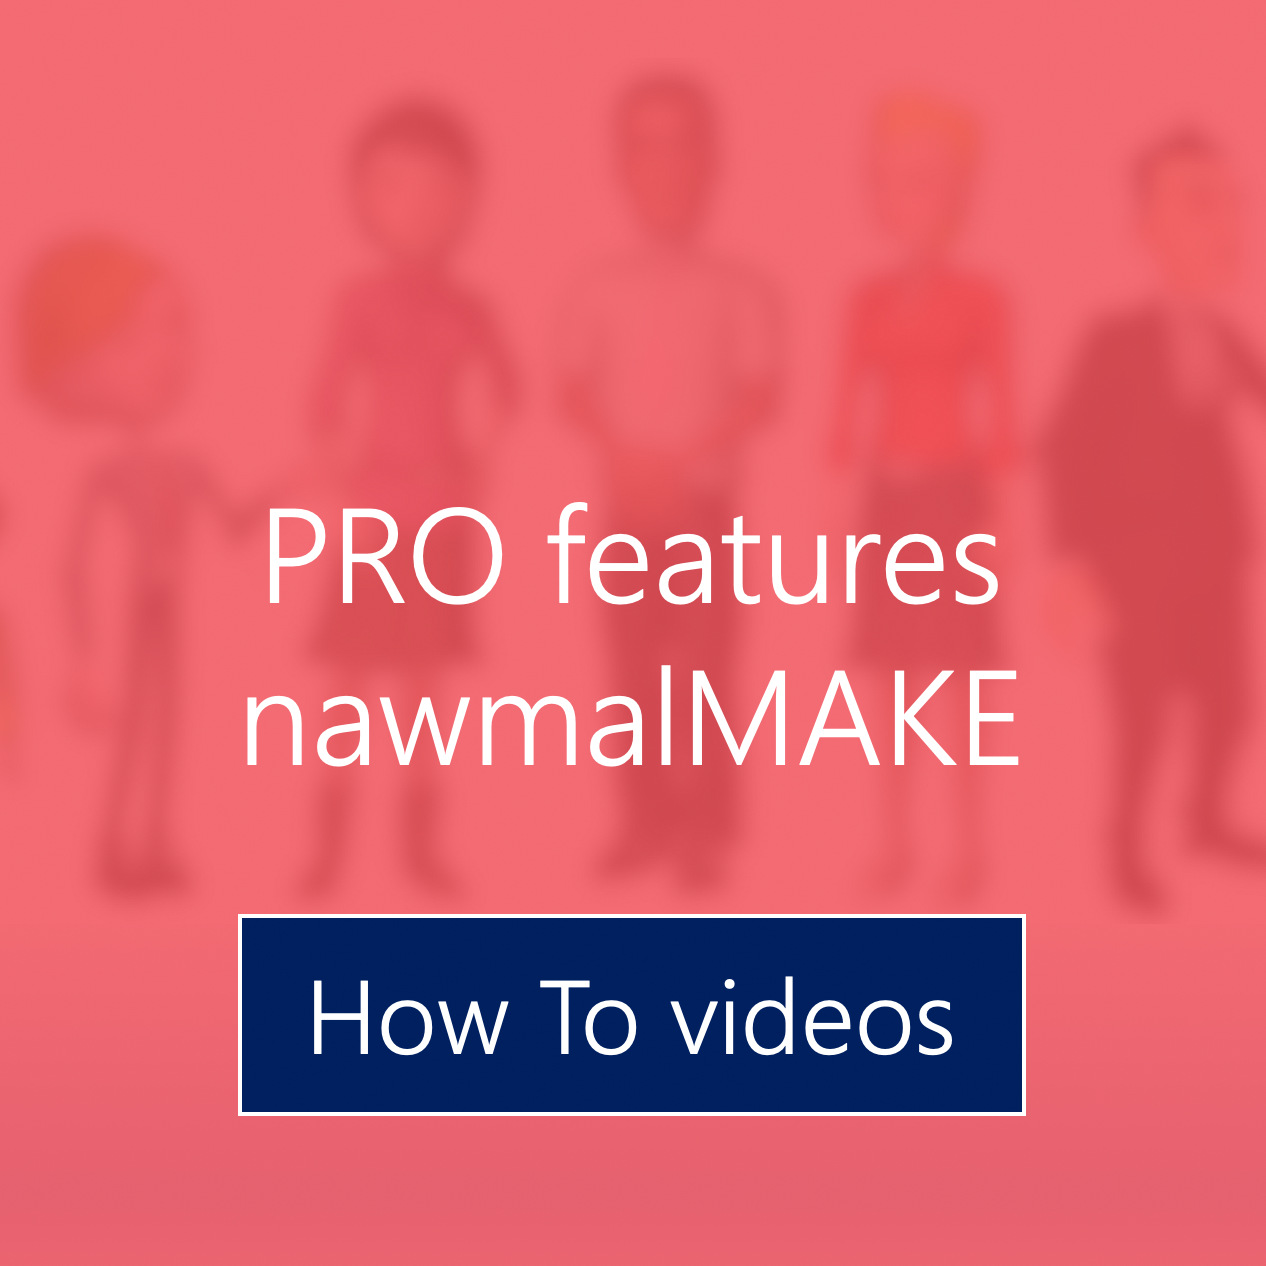 pro feature how to videos